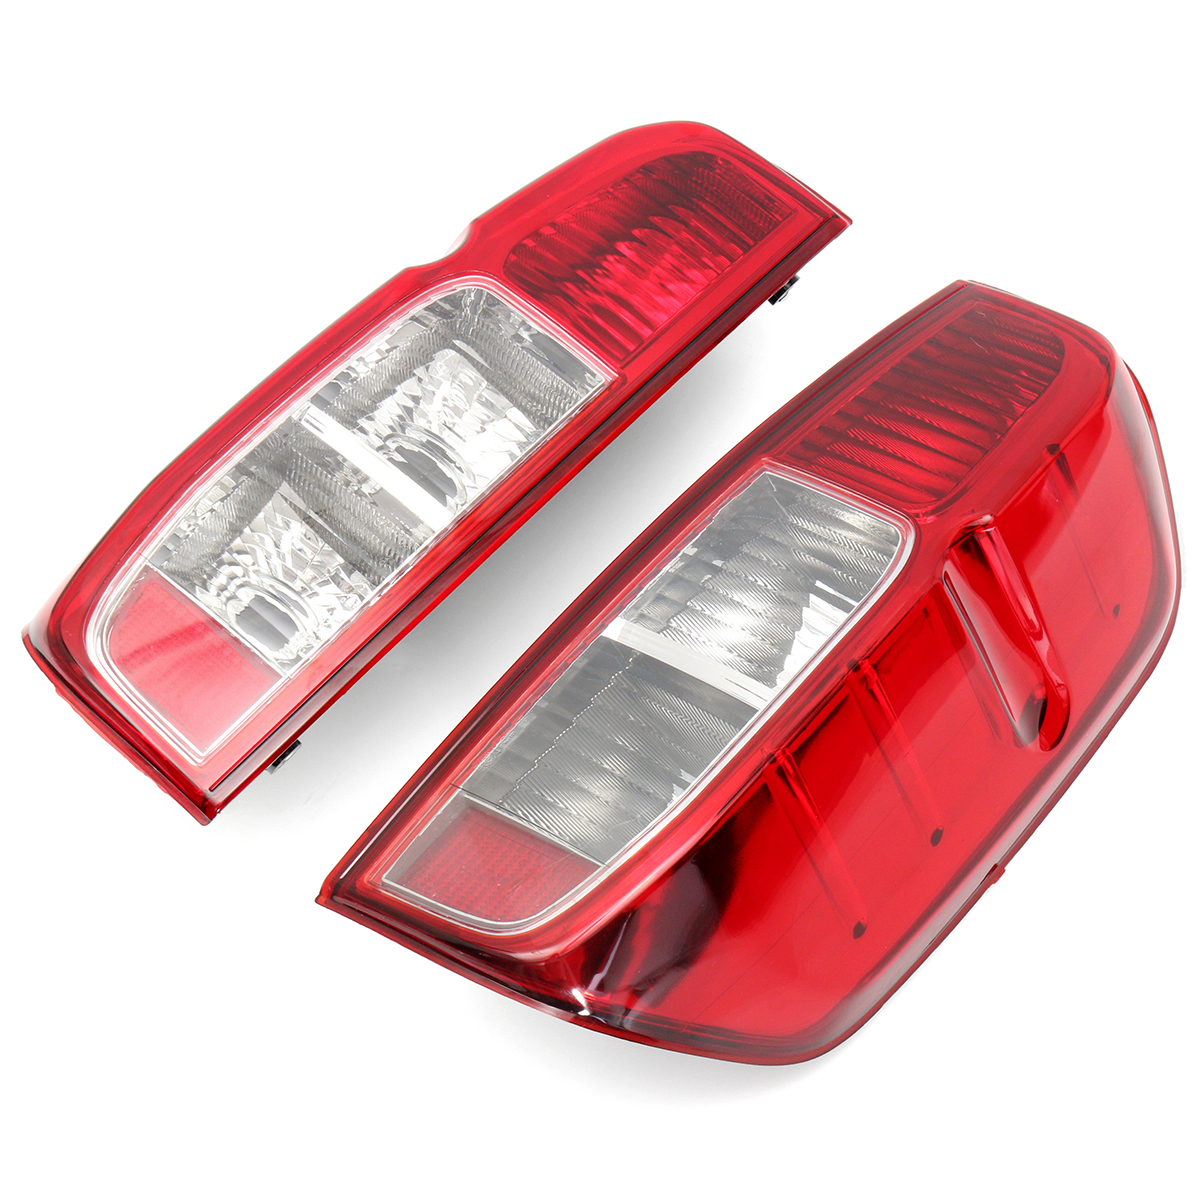 2Pcs LEFT/RIGHT Rear Tail Light Driver Passenger Side Lamp For Nissan NAVARA D40 2005-2015 rear driver passenger side tail light brake lamp for nissan patrol gu 4 5 6 7 8 2005 2006 2007 2008 2009 2010 2011 2012 2016